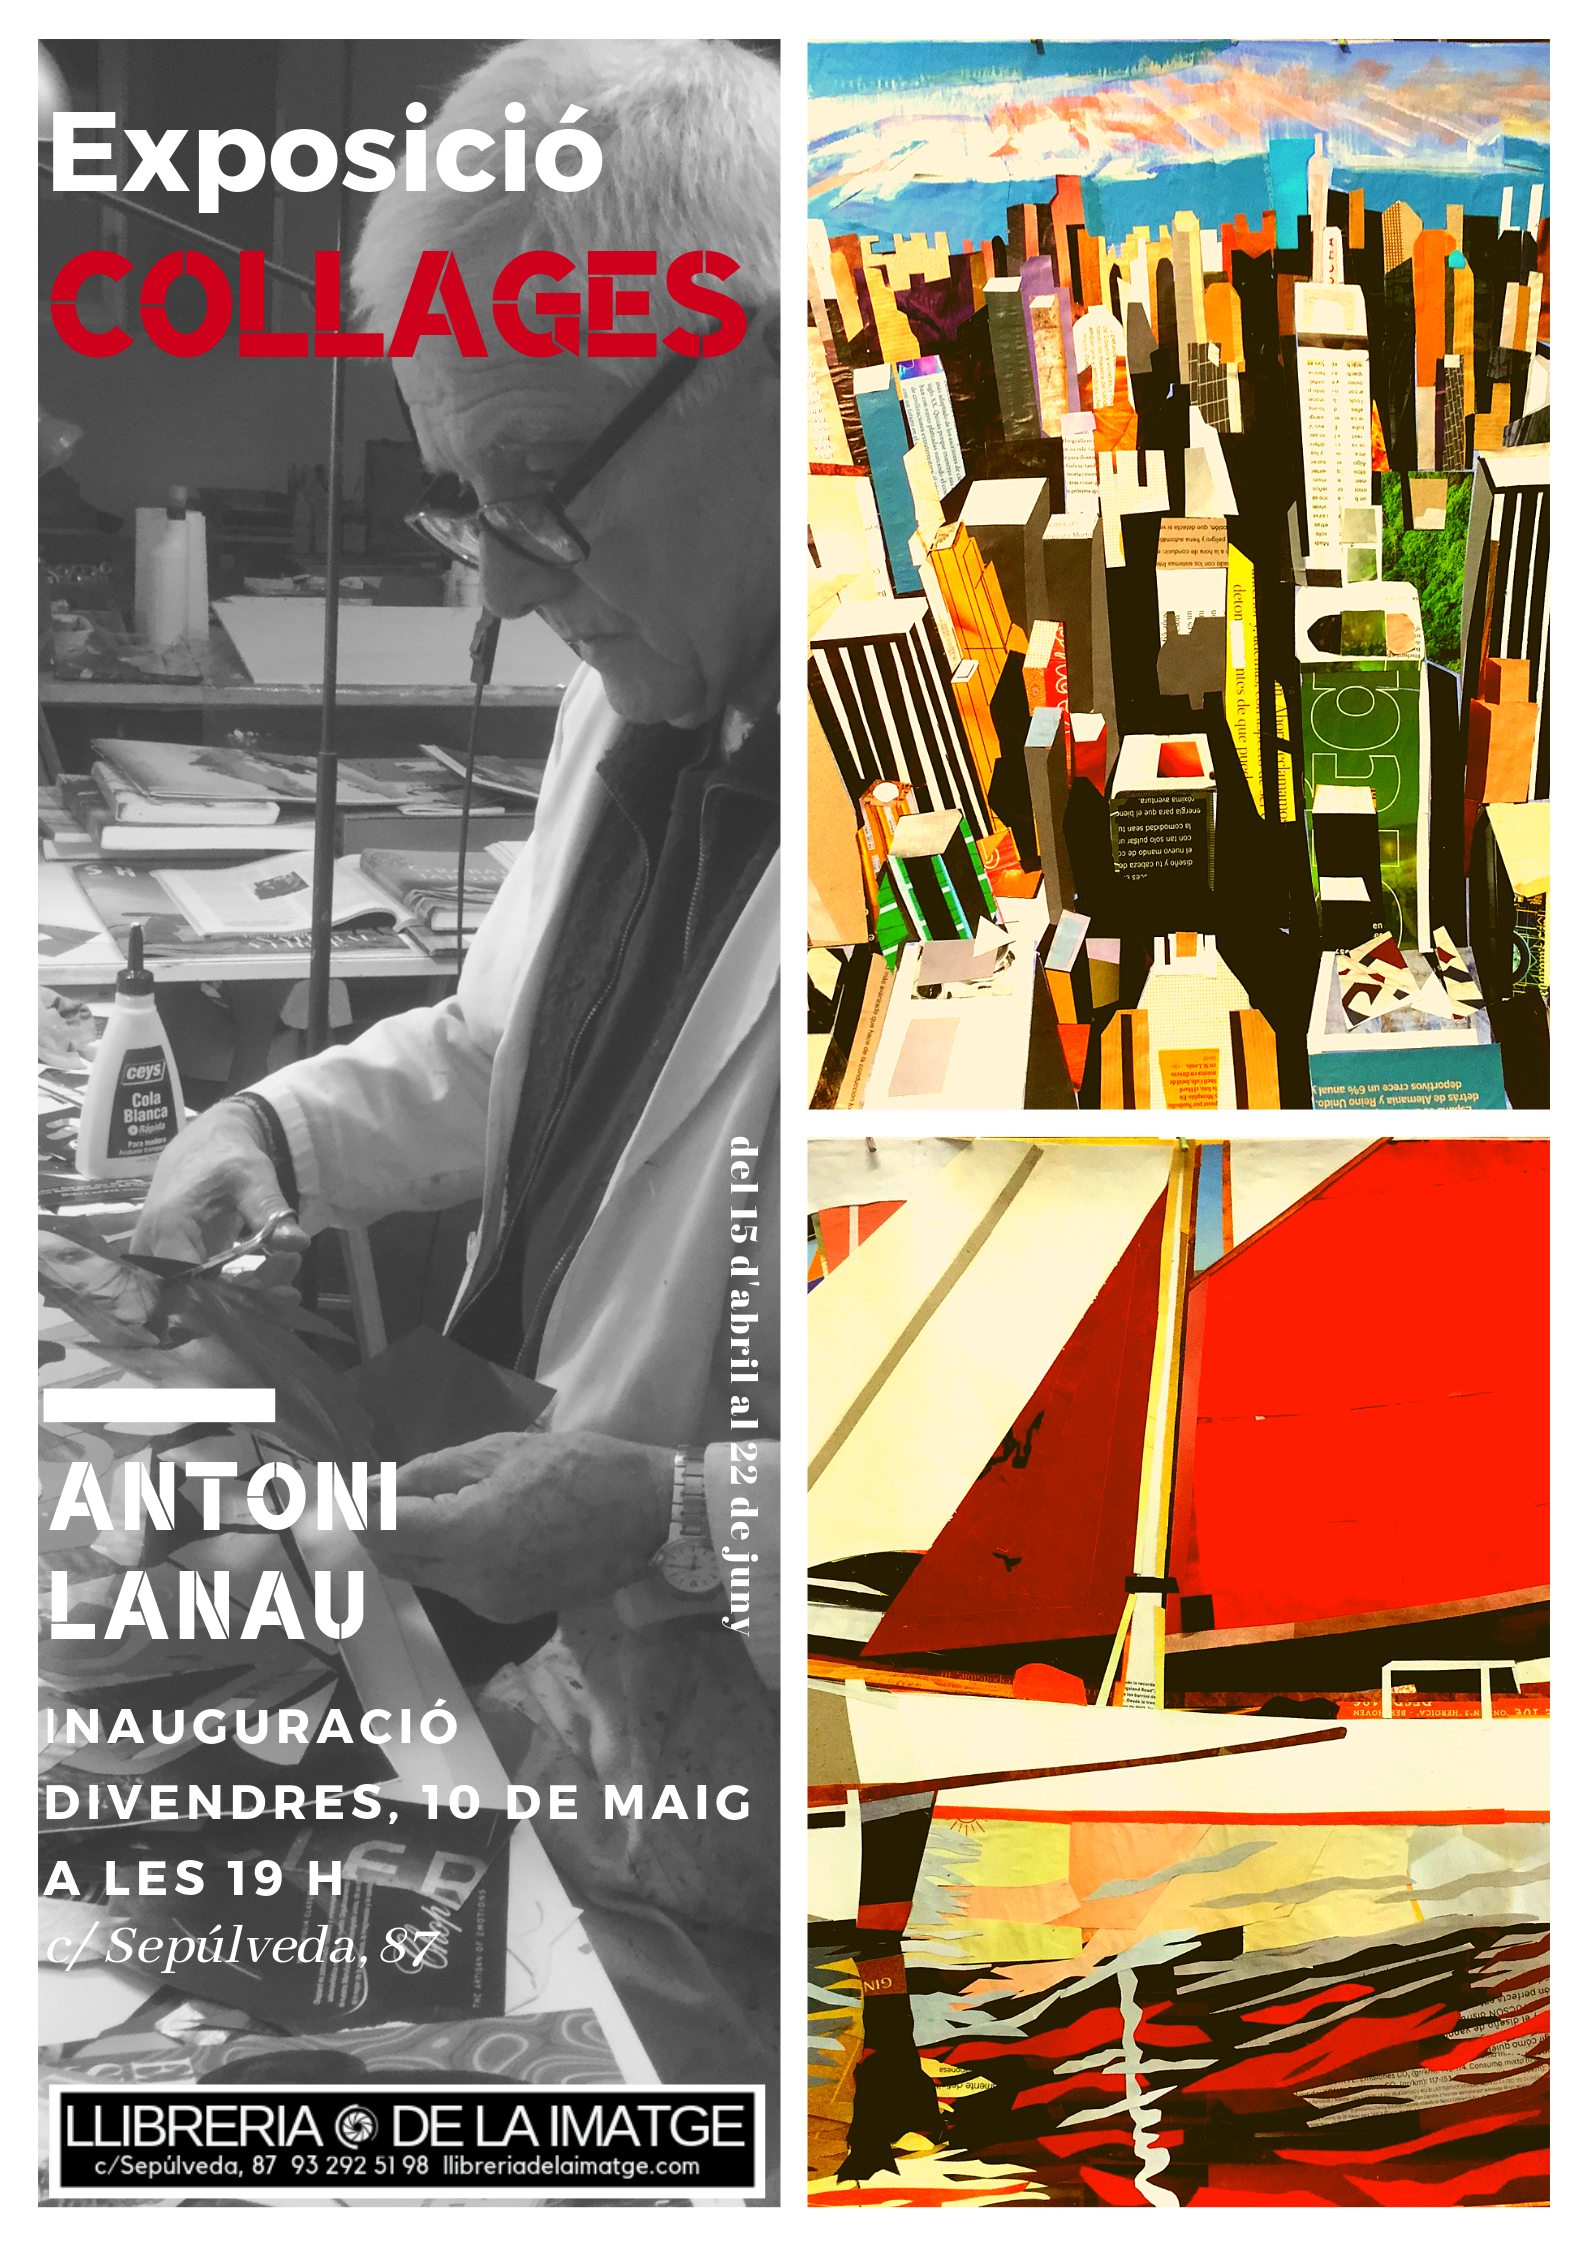 CARTELL COLLAGES LANAU